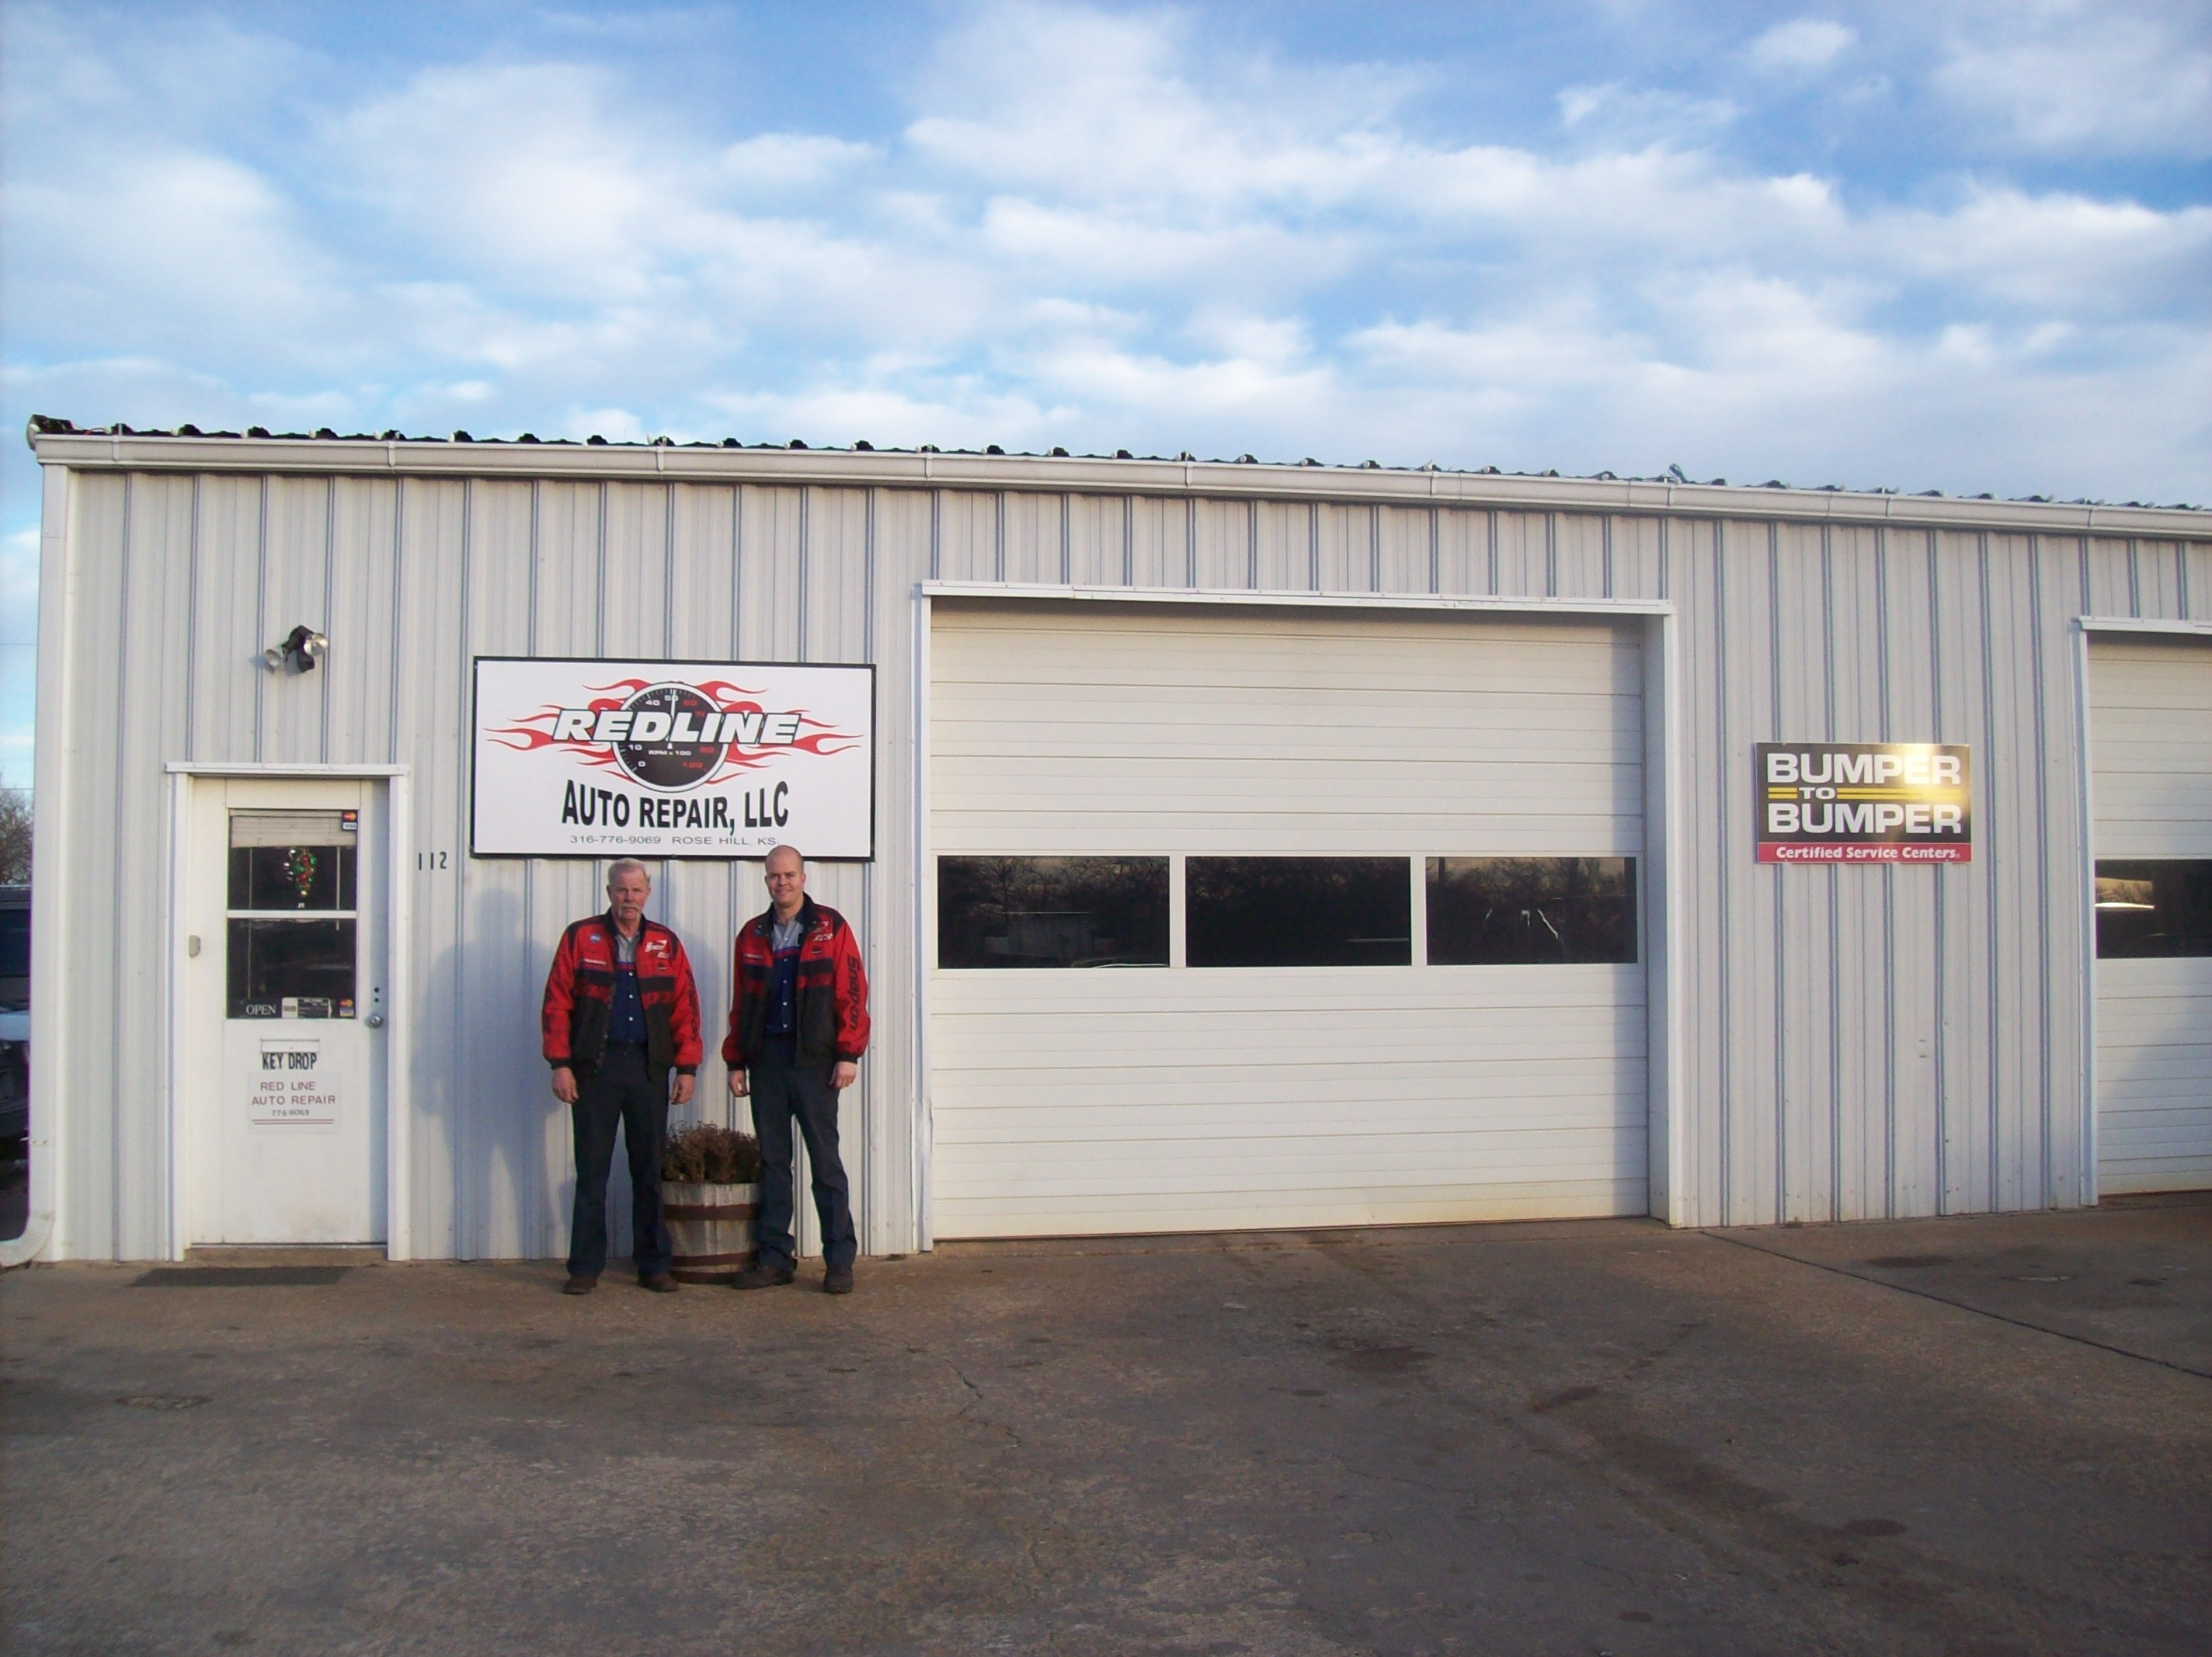 redline automotive auto repair shop mechanic car engine mechanical problems fix transmissions radiator alternator rose hill kansas